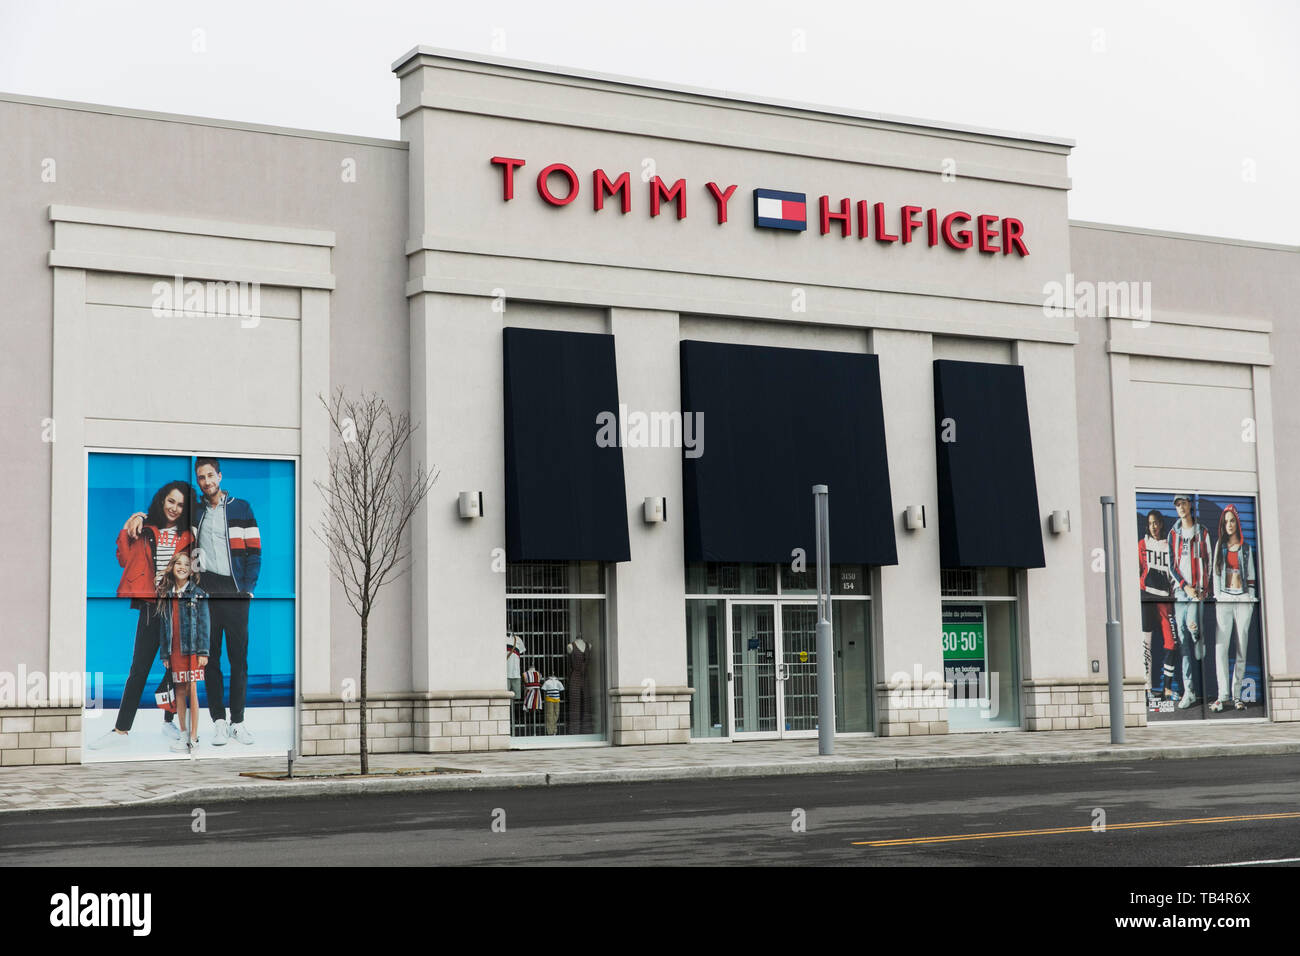 6c9e3a152eb A logo sign outside of a Tommy Hilfiger retail store location in  Vaudreuil-Dorion,